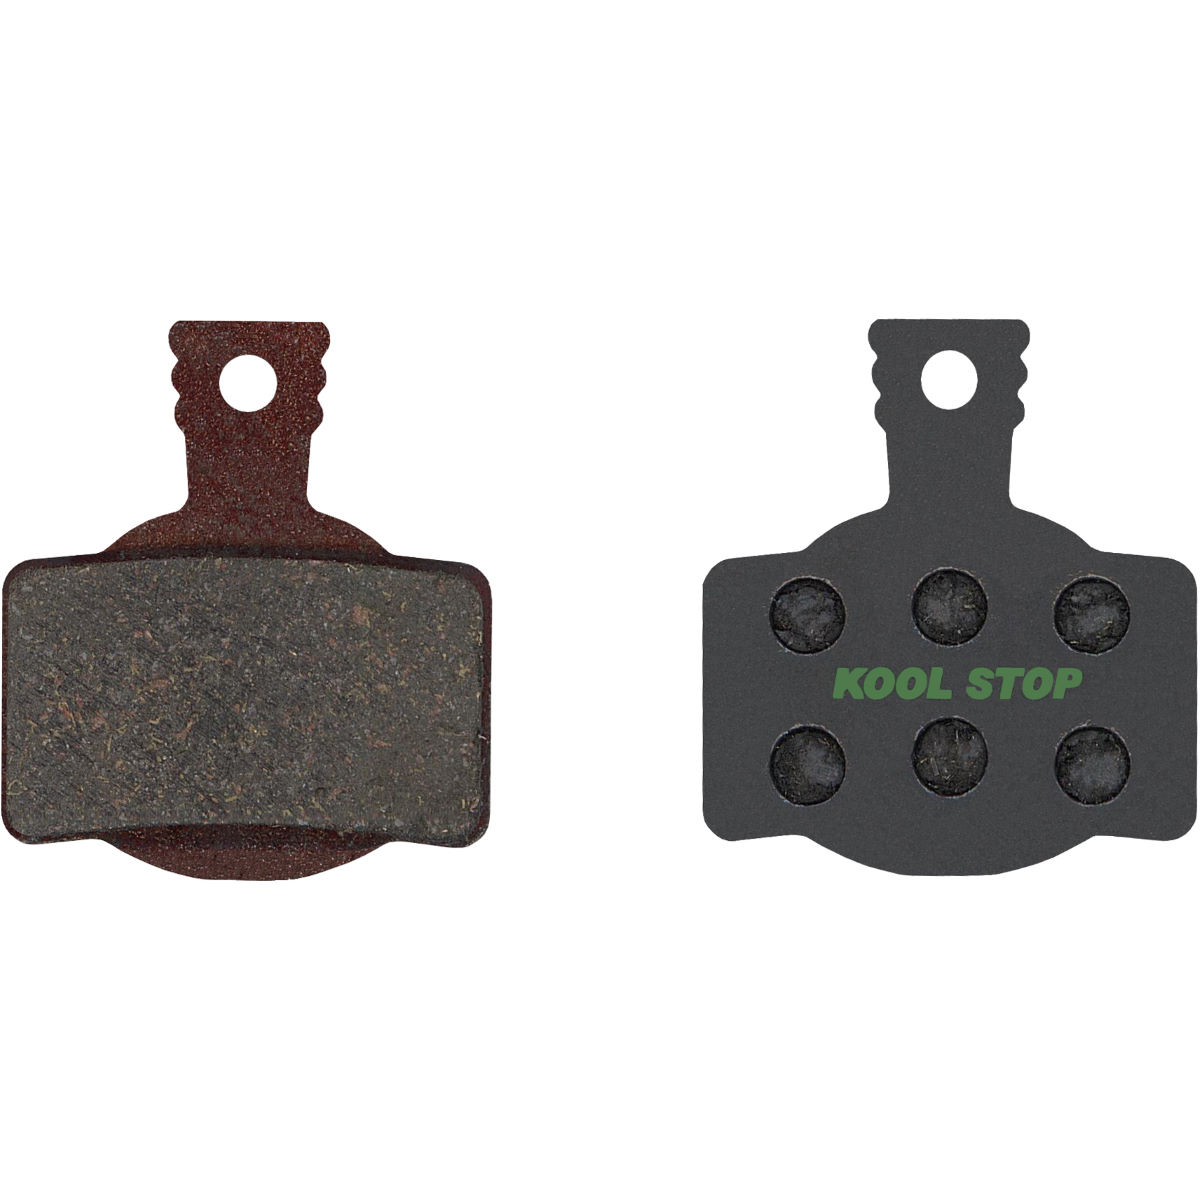 Kool Stop Kool Stop D160E Magura Brake Pads for E-Bike   Disc Brake Pads